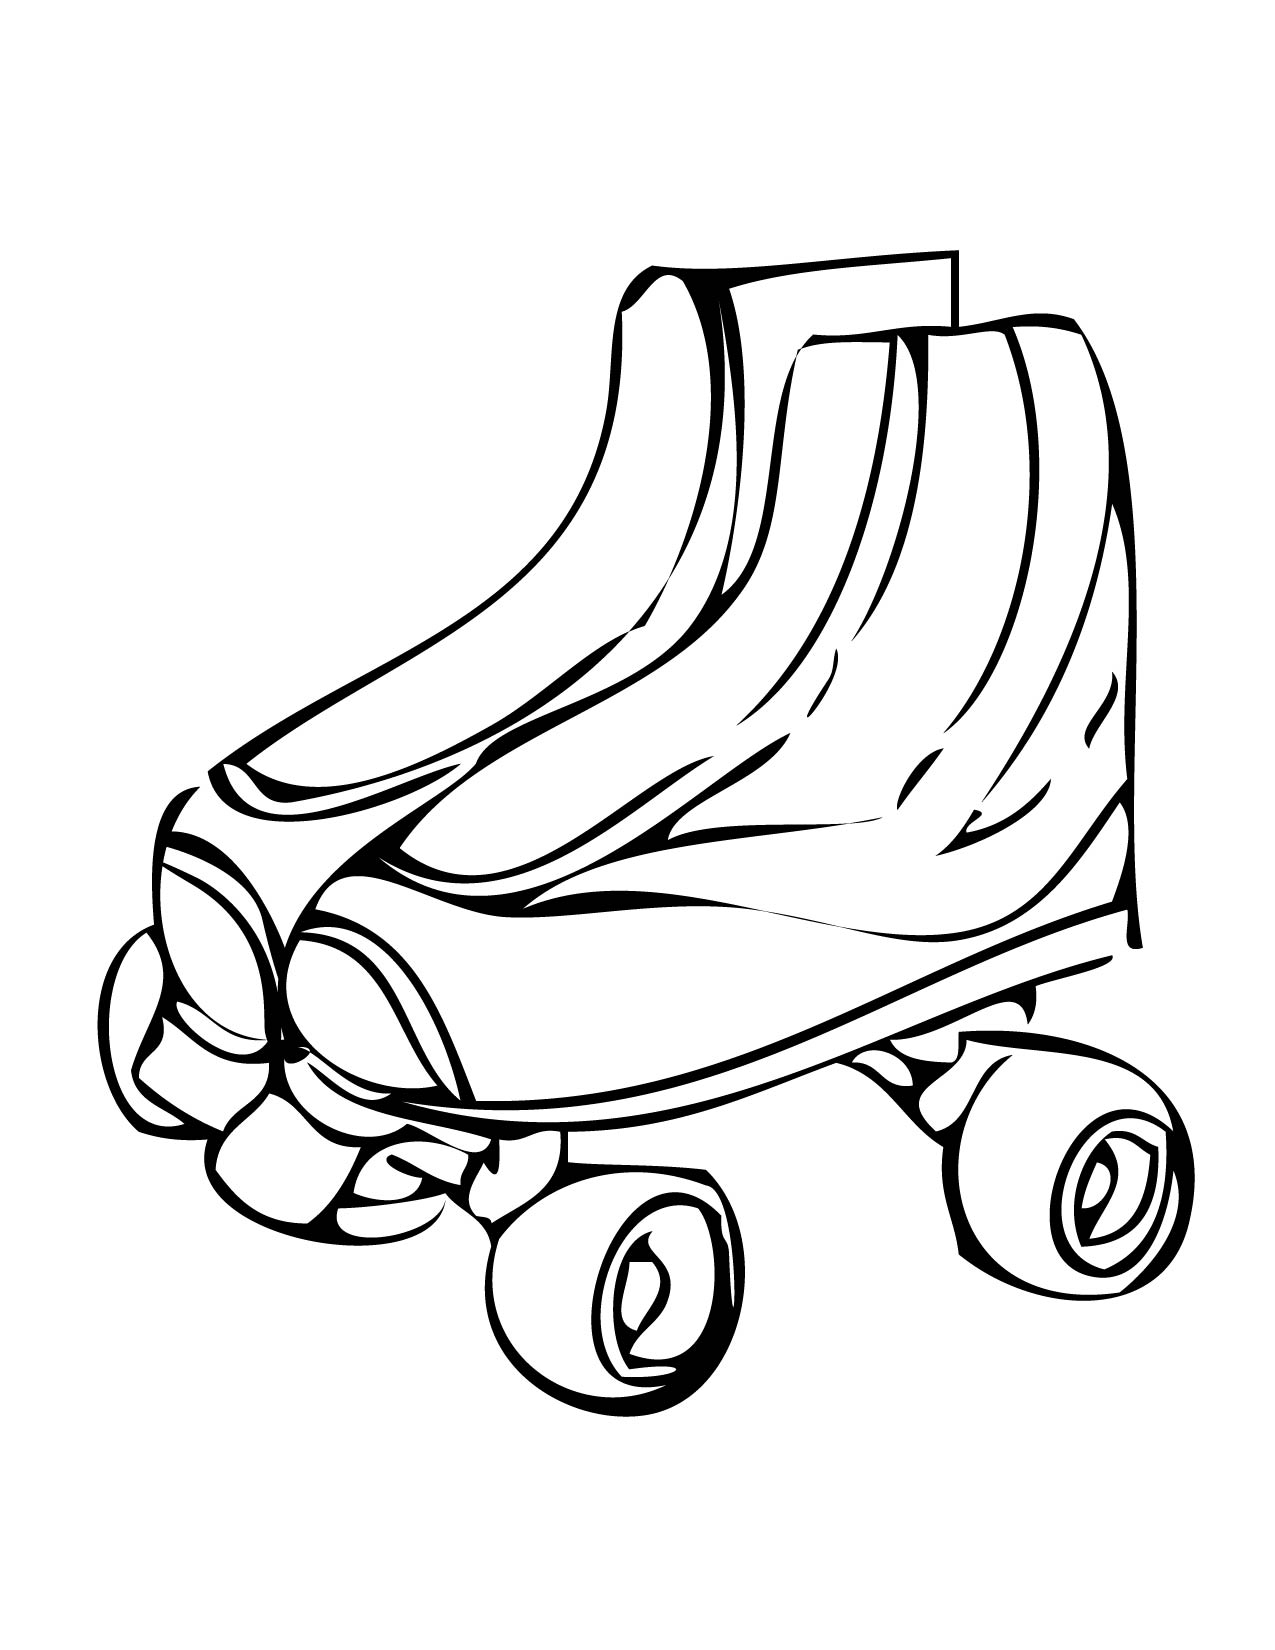 Free Coloring Pages Of Roller Roller Skate Coloring Page